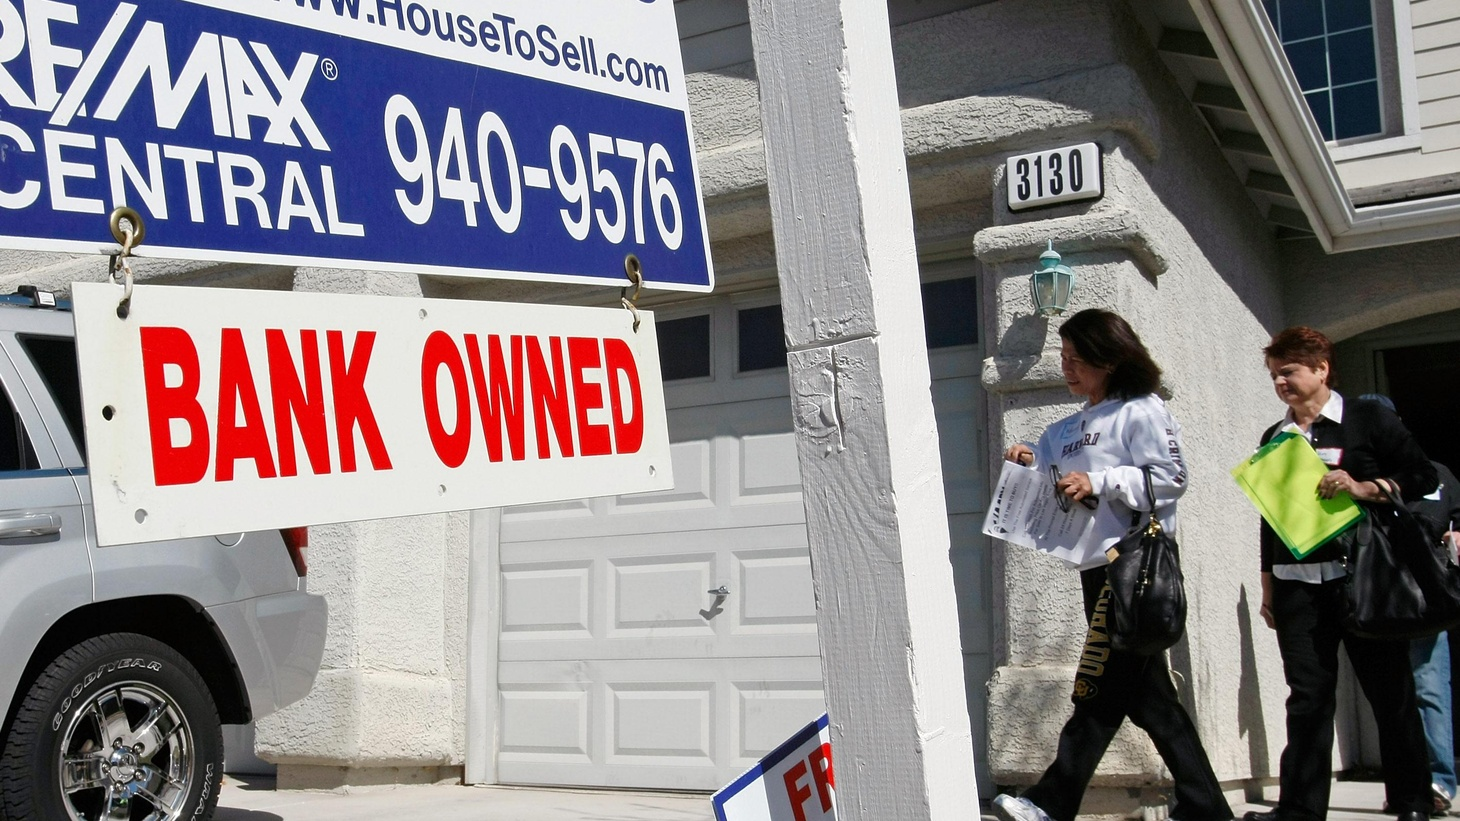 """Foreclosures are on the increase in California, so why is there not enough cheap housing to meet demand? And why is the last big defense contractor pulling out of LA? On our rebroadcast of To the Point, with the Christmas Day bombing attempt now tied to Yemen, Yemeni prisoners could delay the closing of Guantanamo Bay. If they can't be returned to their home country, where will they go? What about """"re-education"""" programs like those in Saudi Arabia?"""